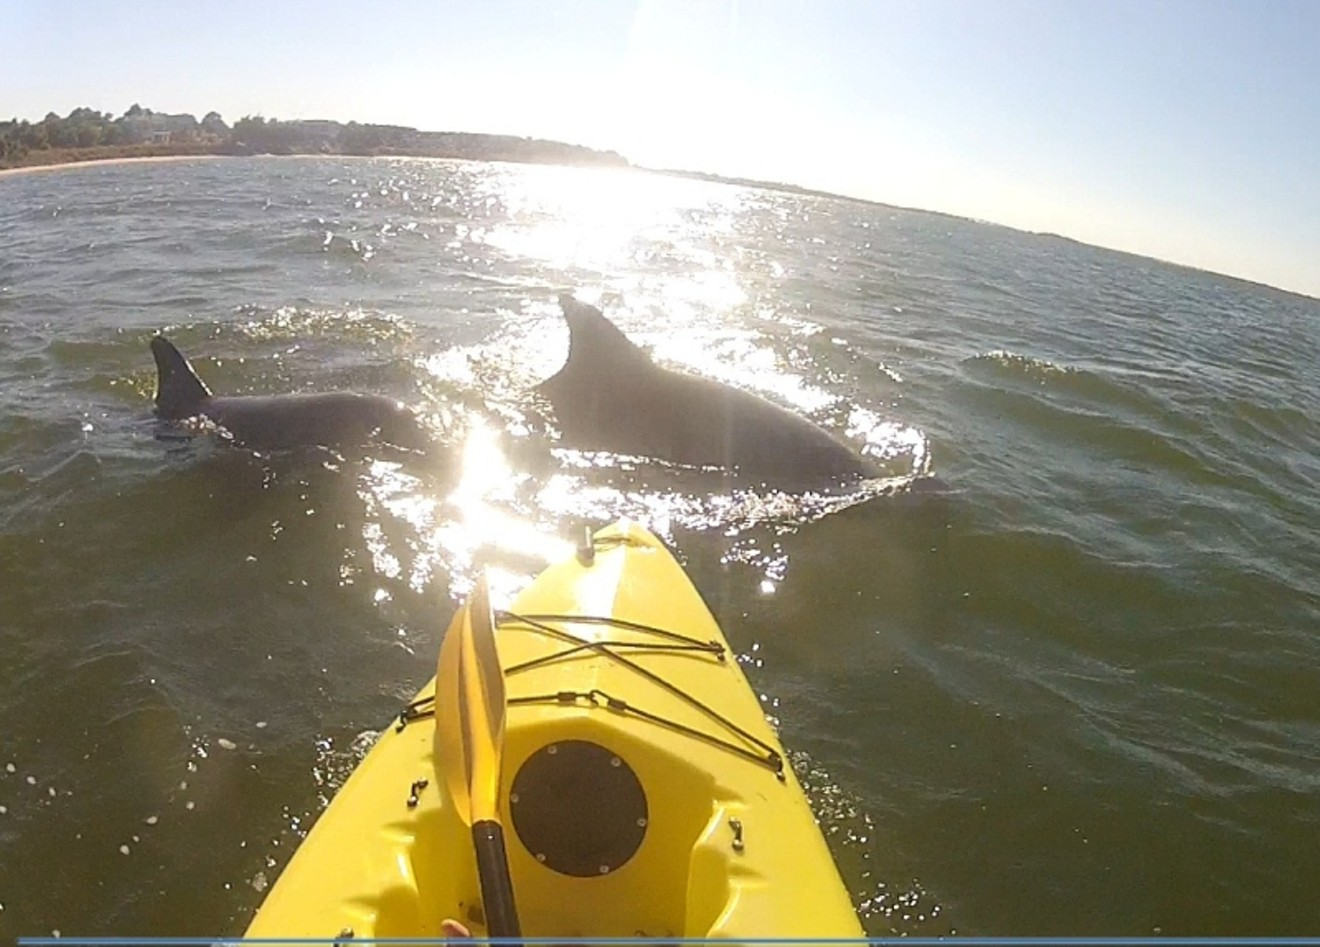 Muriel Lindsay photographs a pod of dolphins across the bow of her kayak 'Buttercup' at the mouth of the Savannah River.